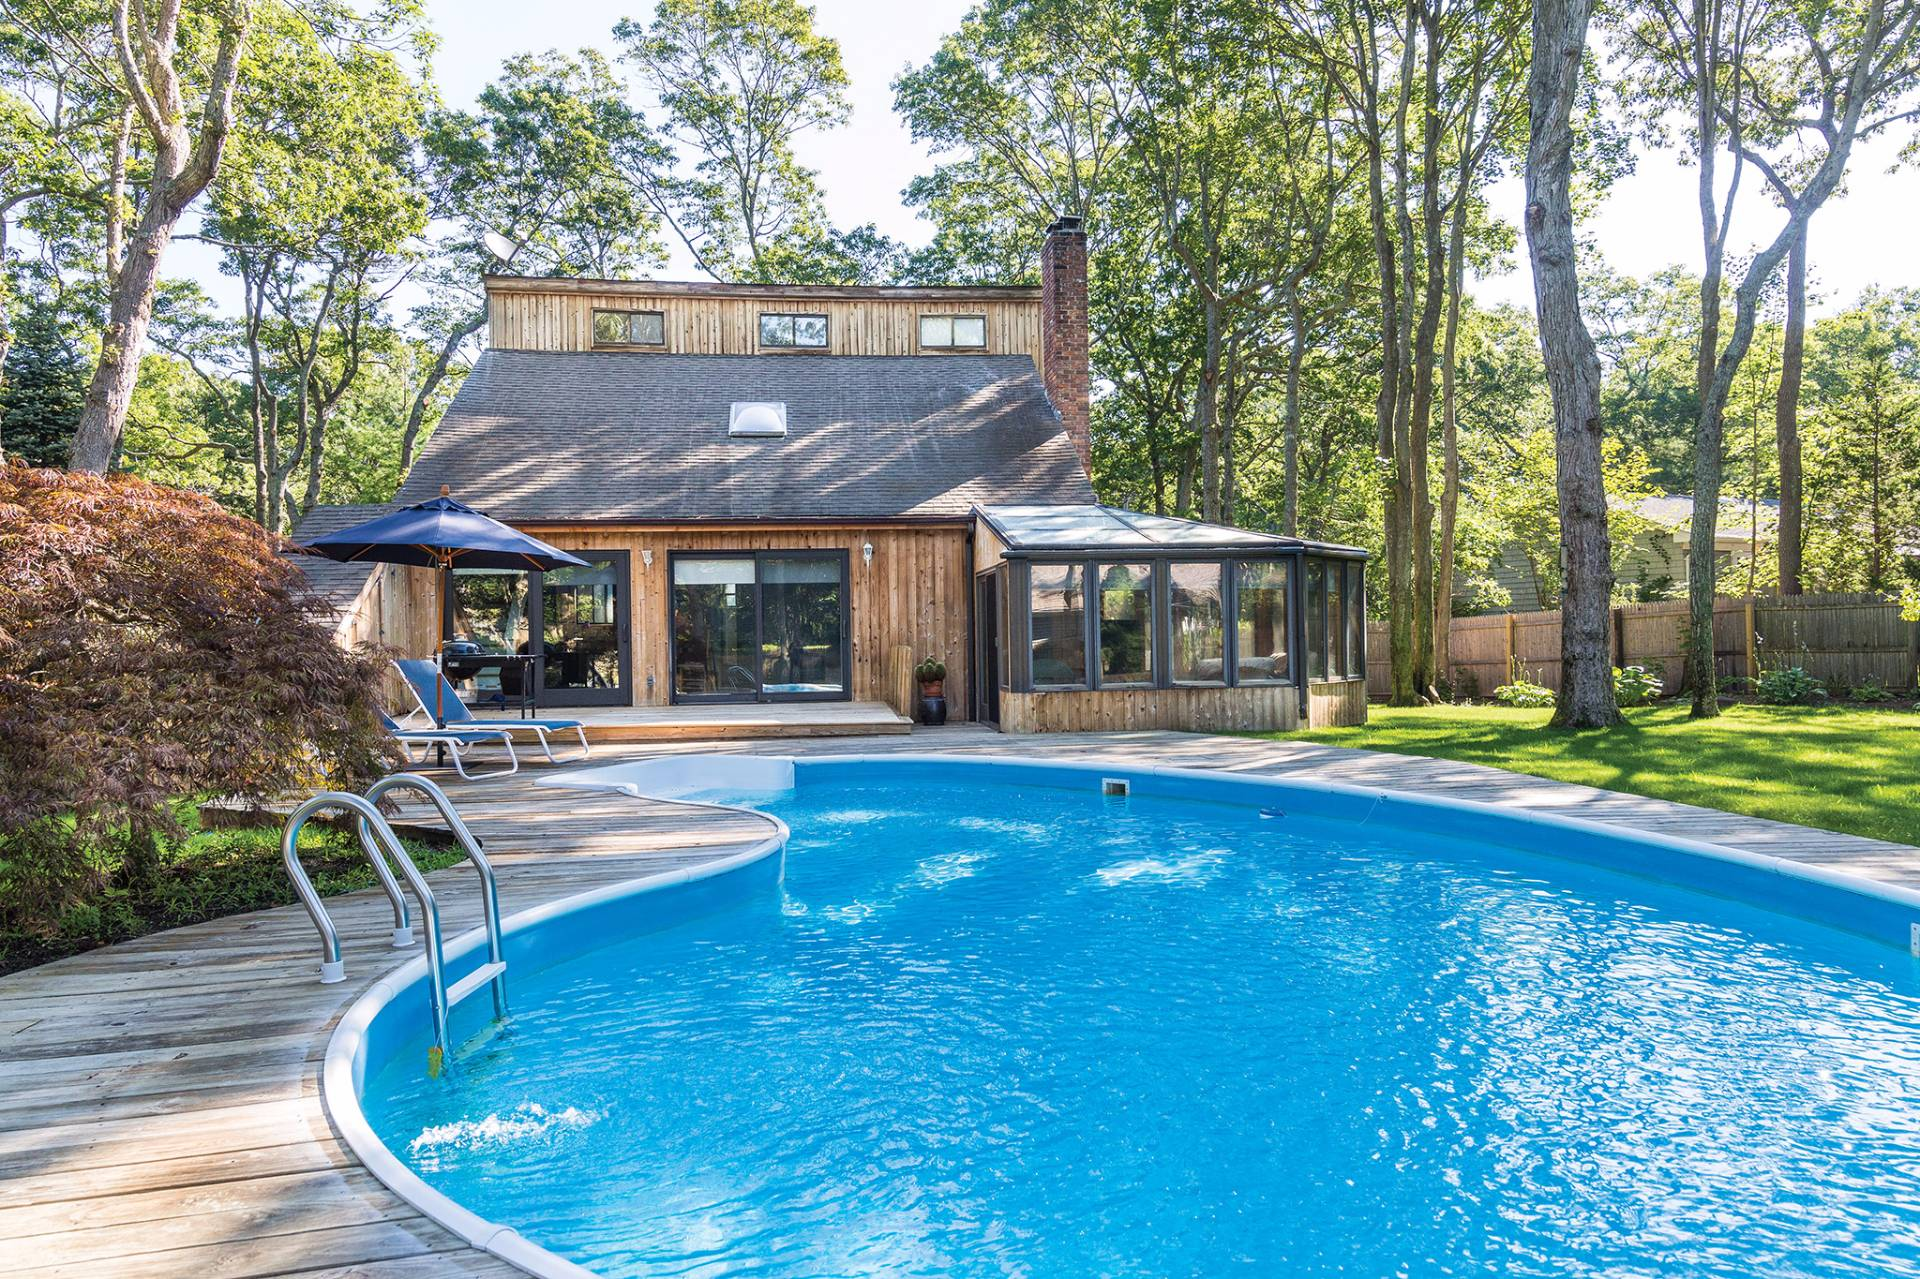 Single Family Home for Sale at Newly Listed The Affordable Dream 60 Gardiner Avenue, East Hampton, New York